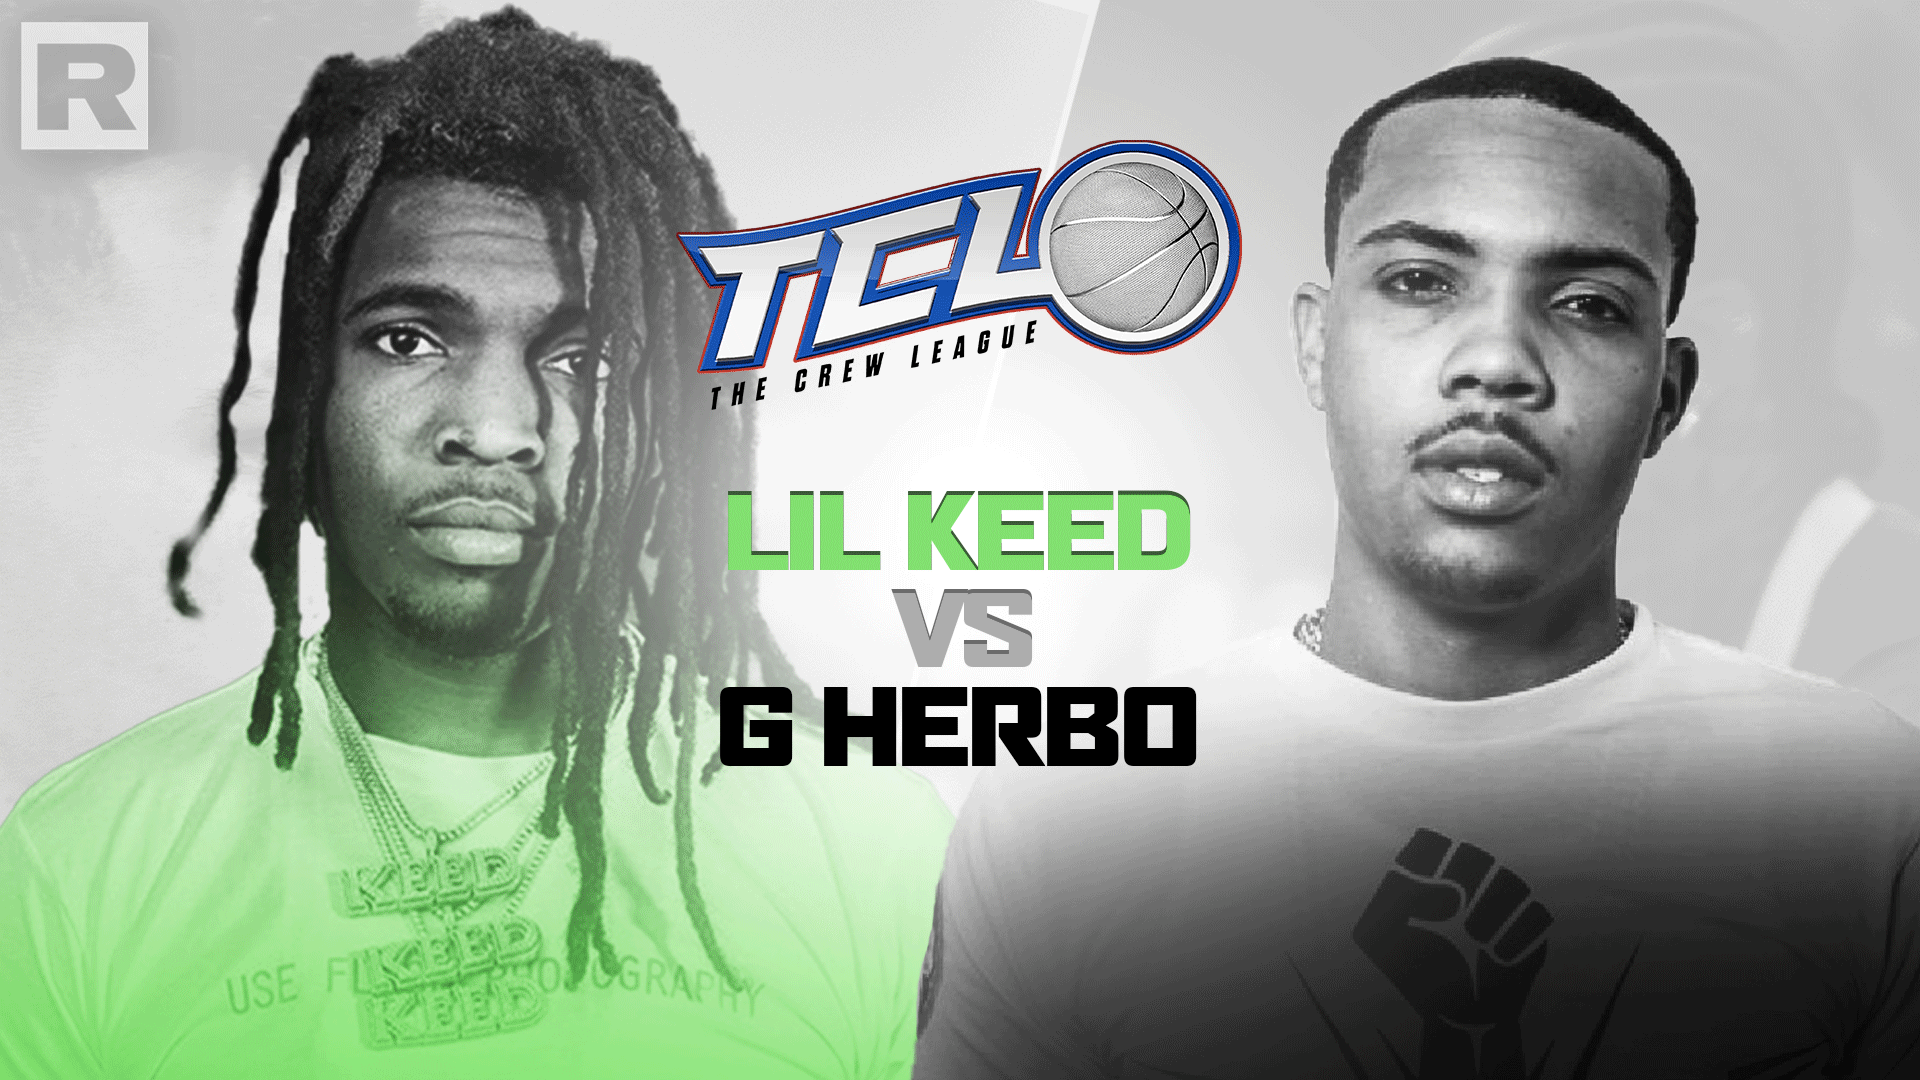 Team Lil Keed and Team G Herbo